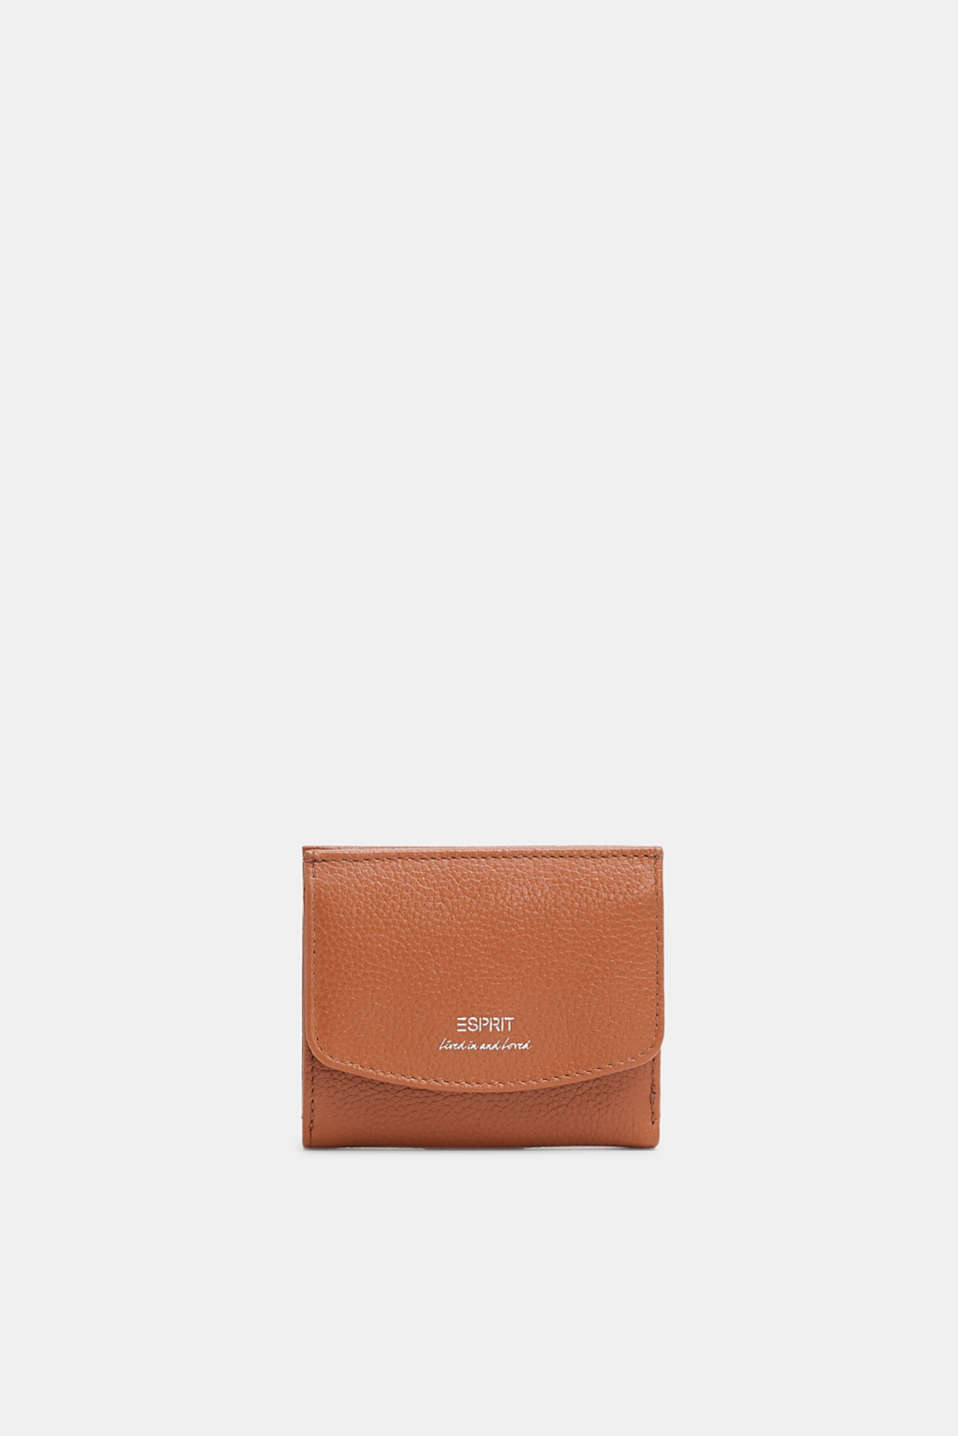 Esprit - Mini wallet in leather